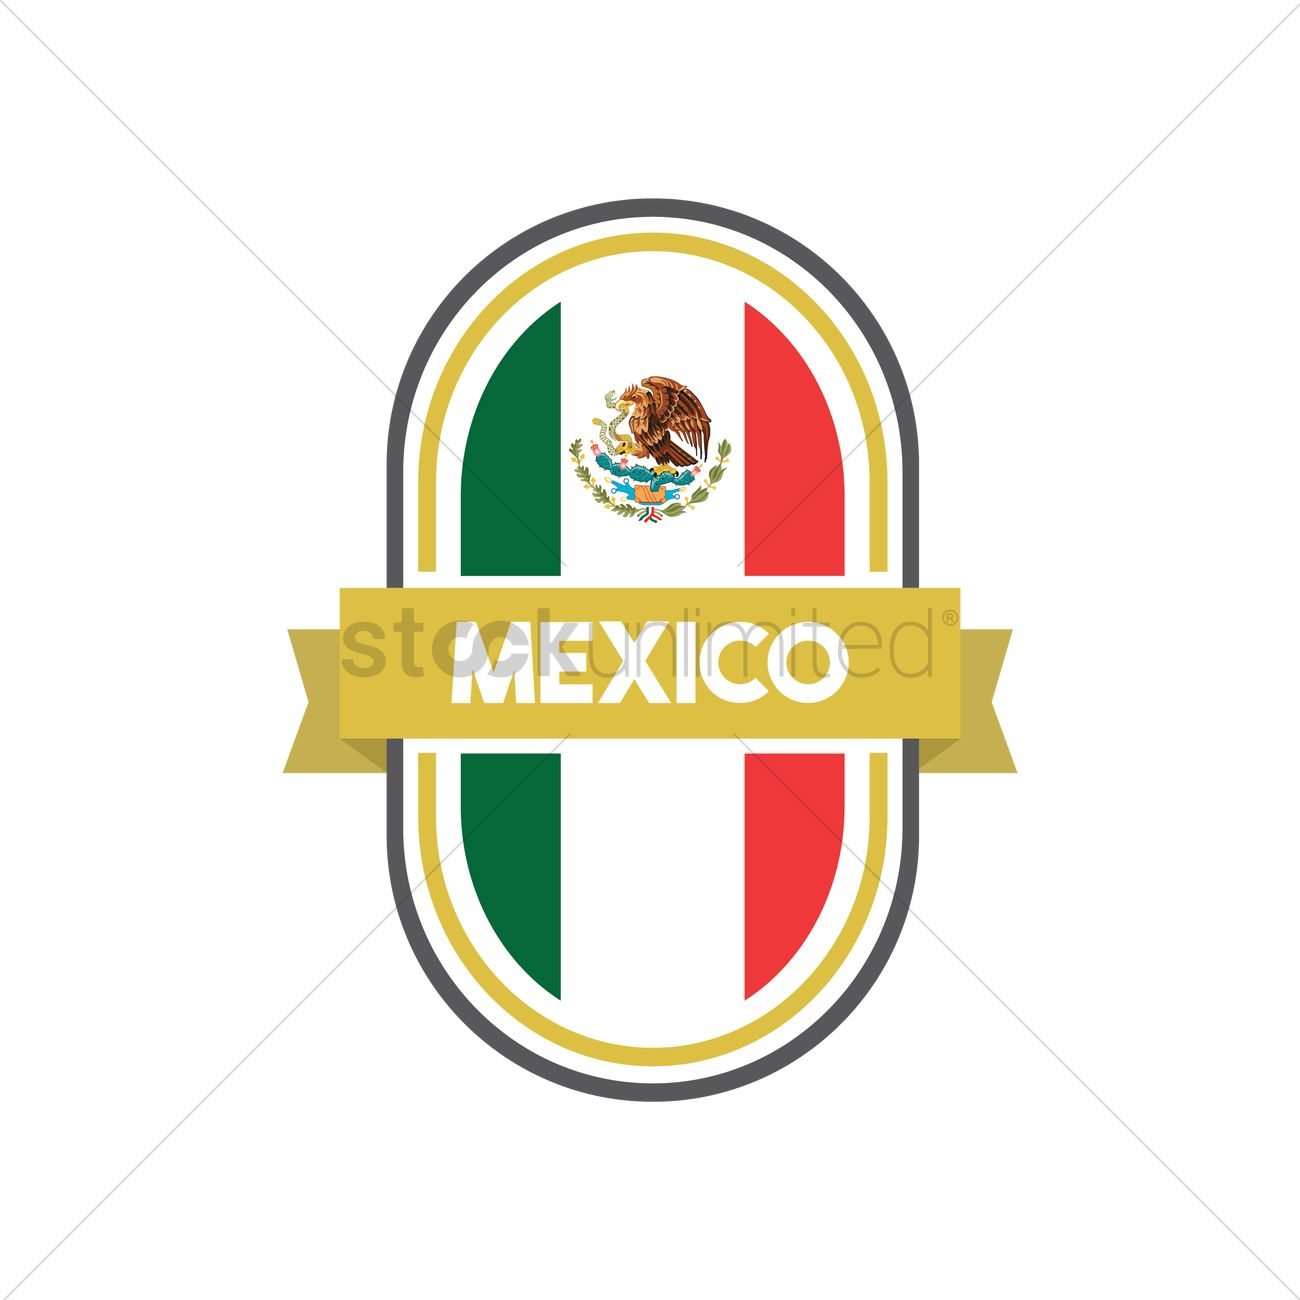 Mexican flag label vector image 1618480 stockunlimited mexican flag label vector graphic biocorpaavc Gallery